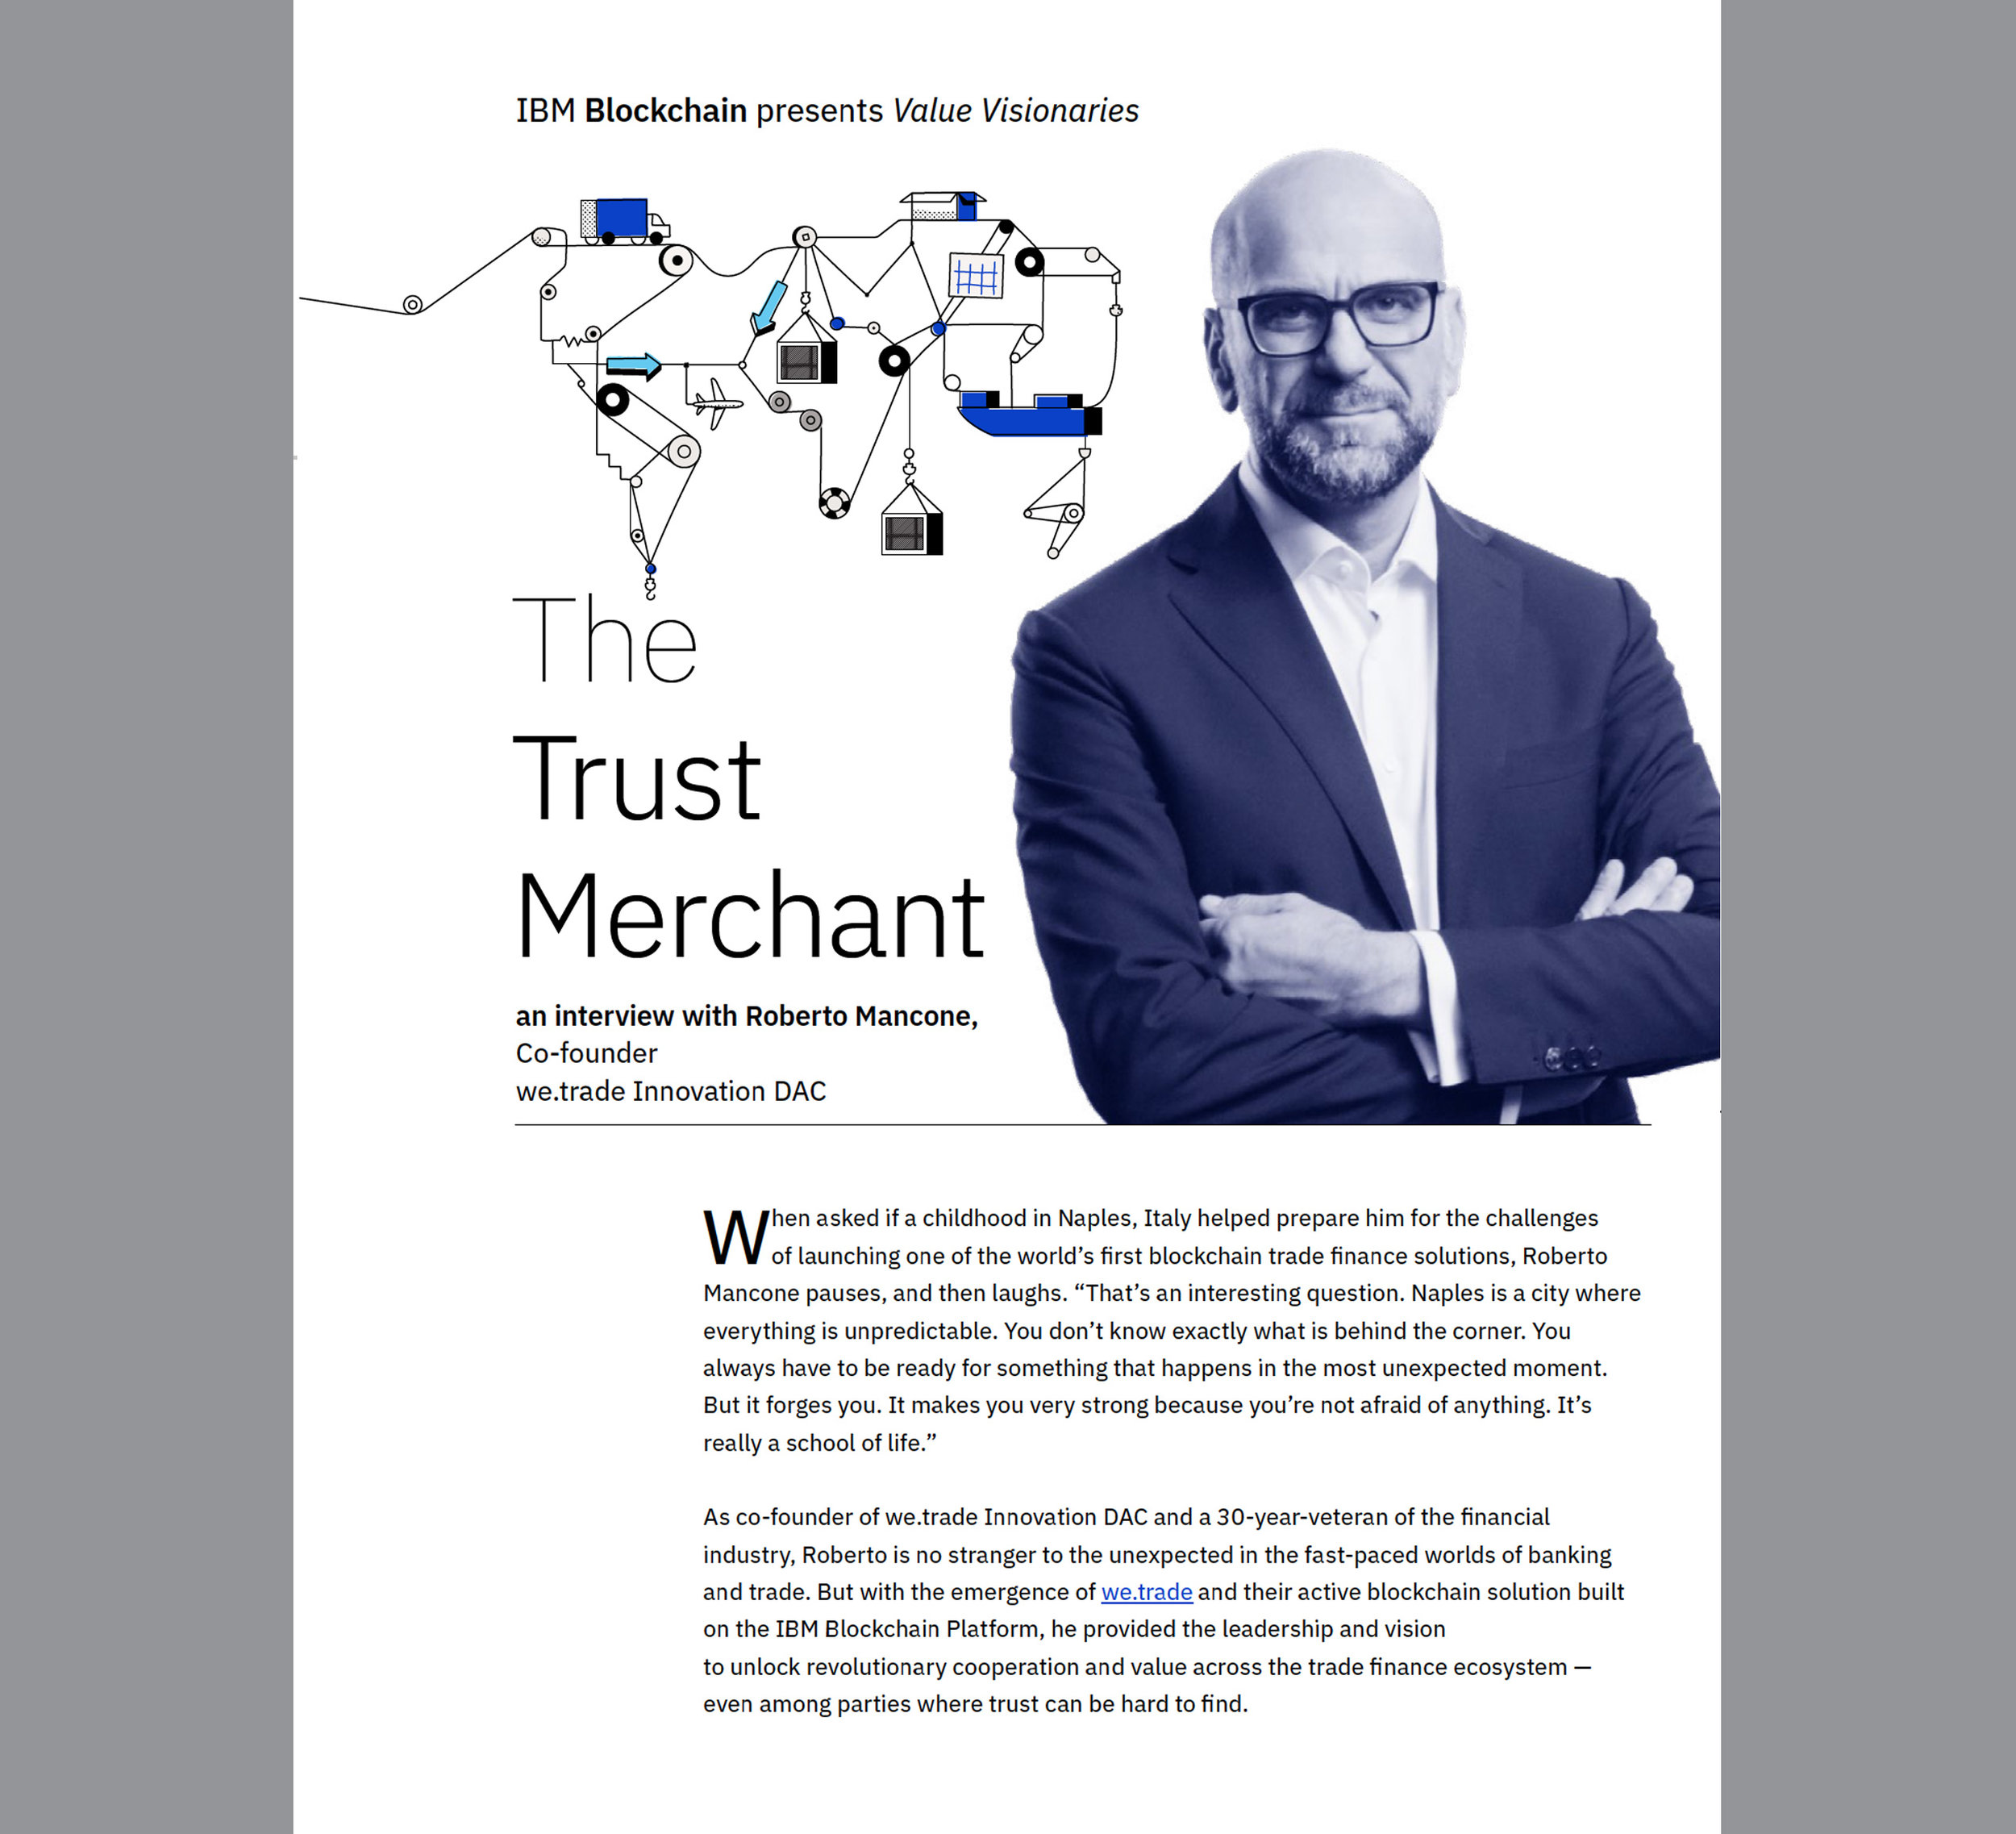 read  Value Visionaries  article: The Trust Merchant